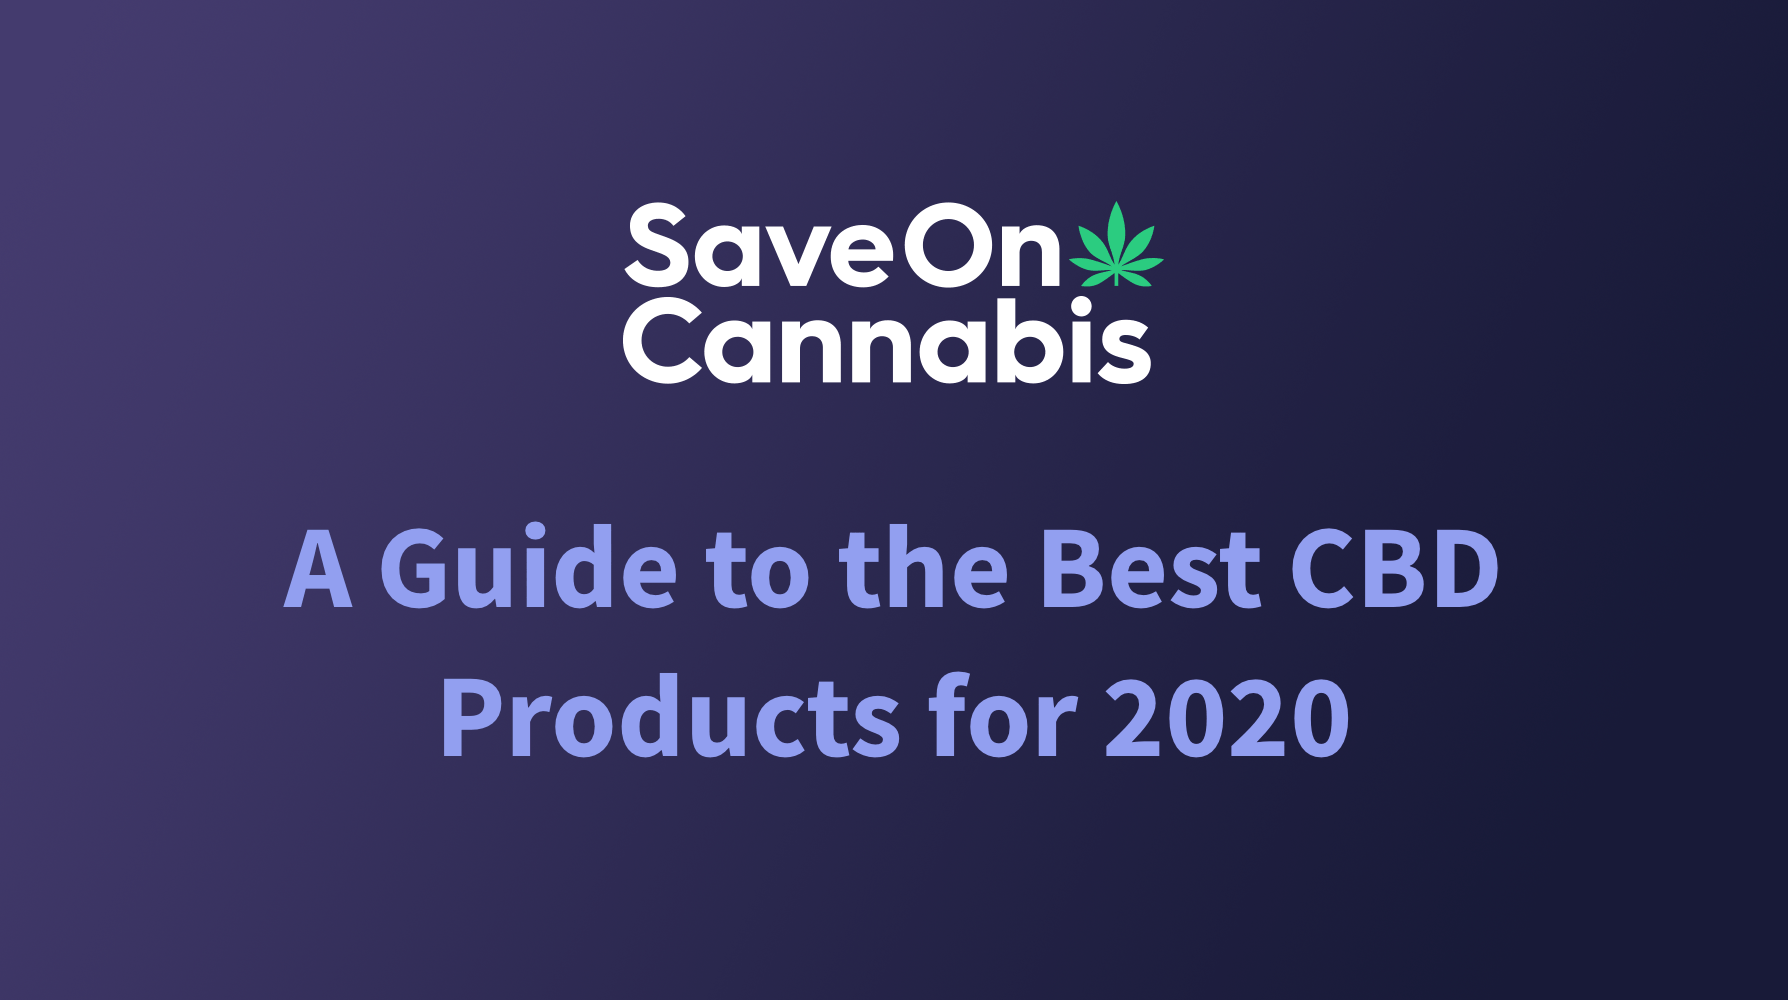 Best CBD Products Guide 2020